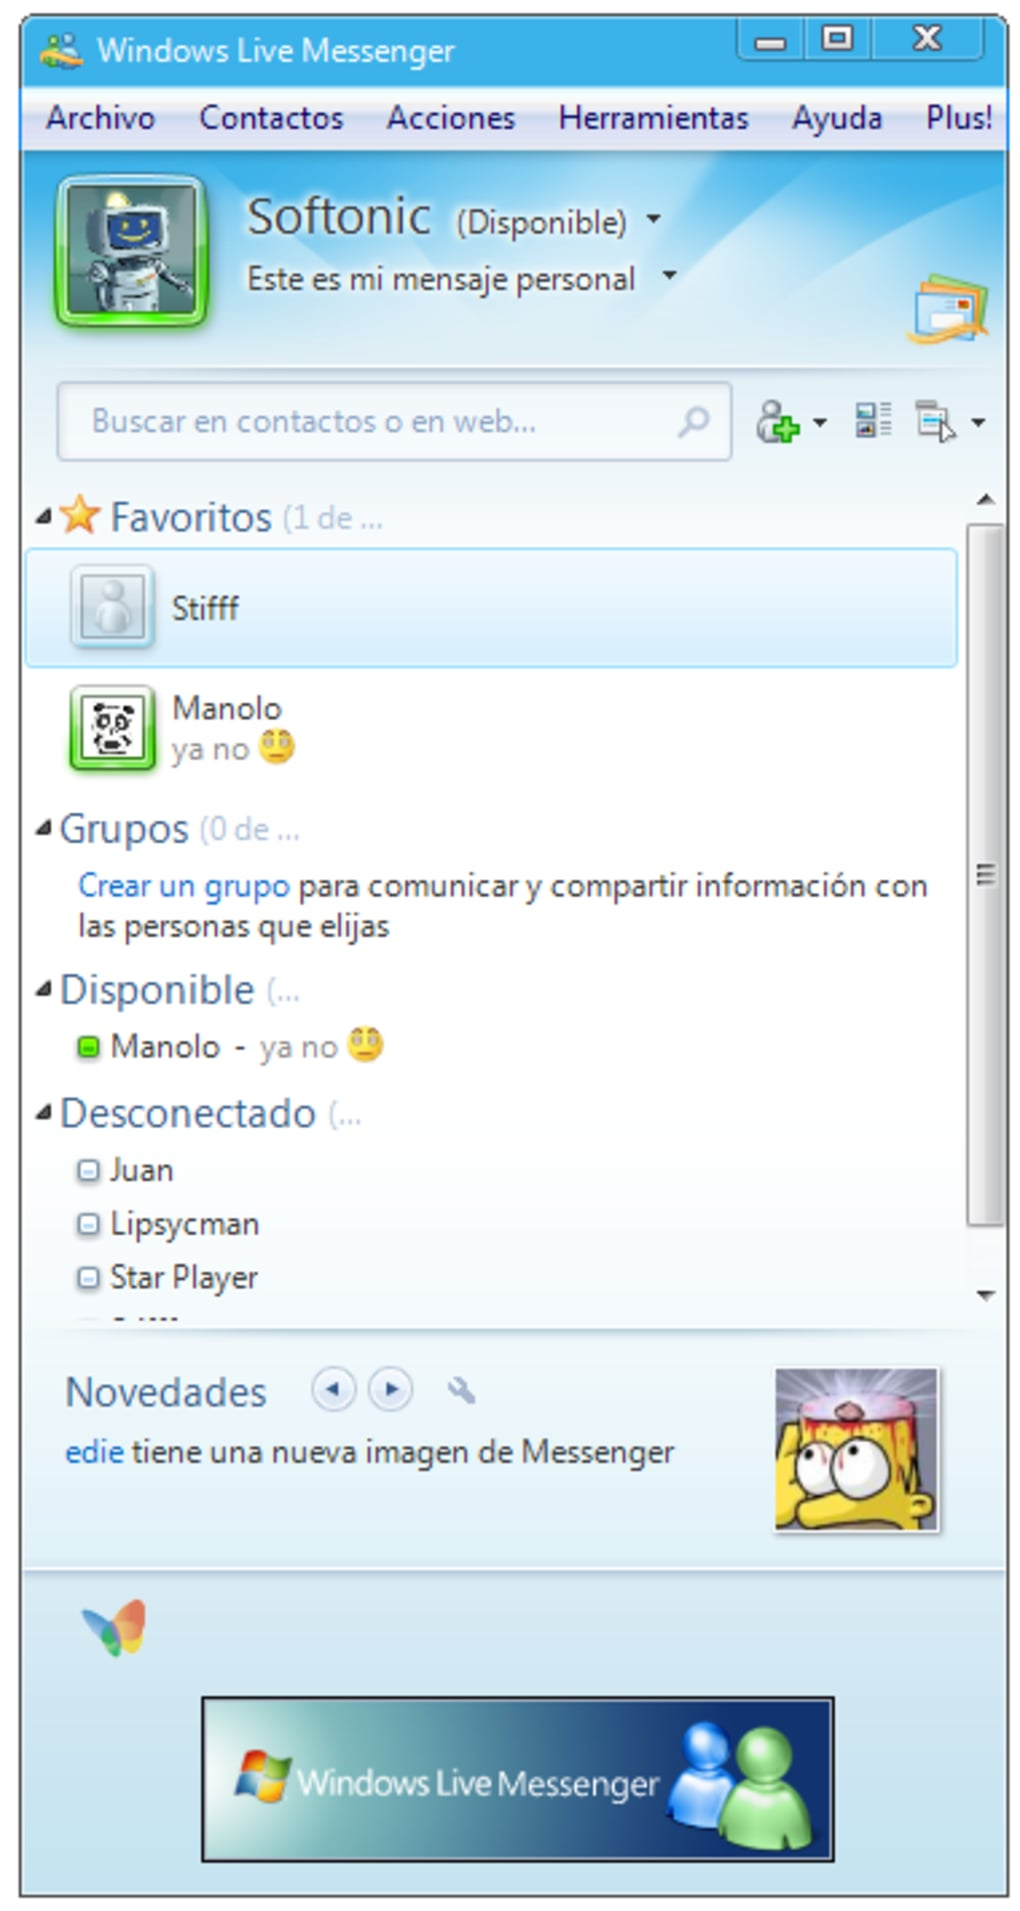 Windows Live Messenger - Download.com